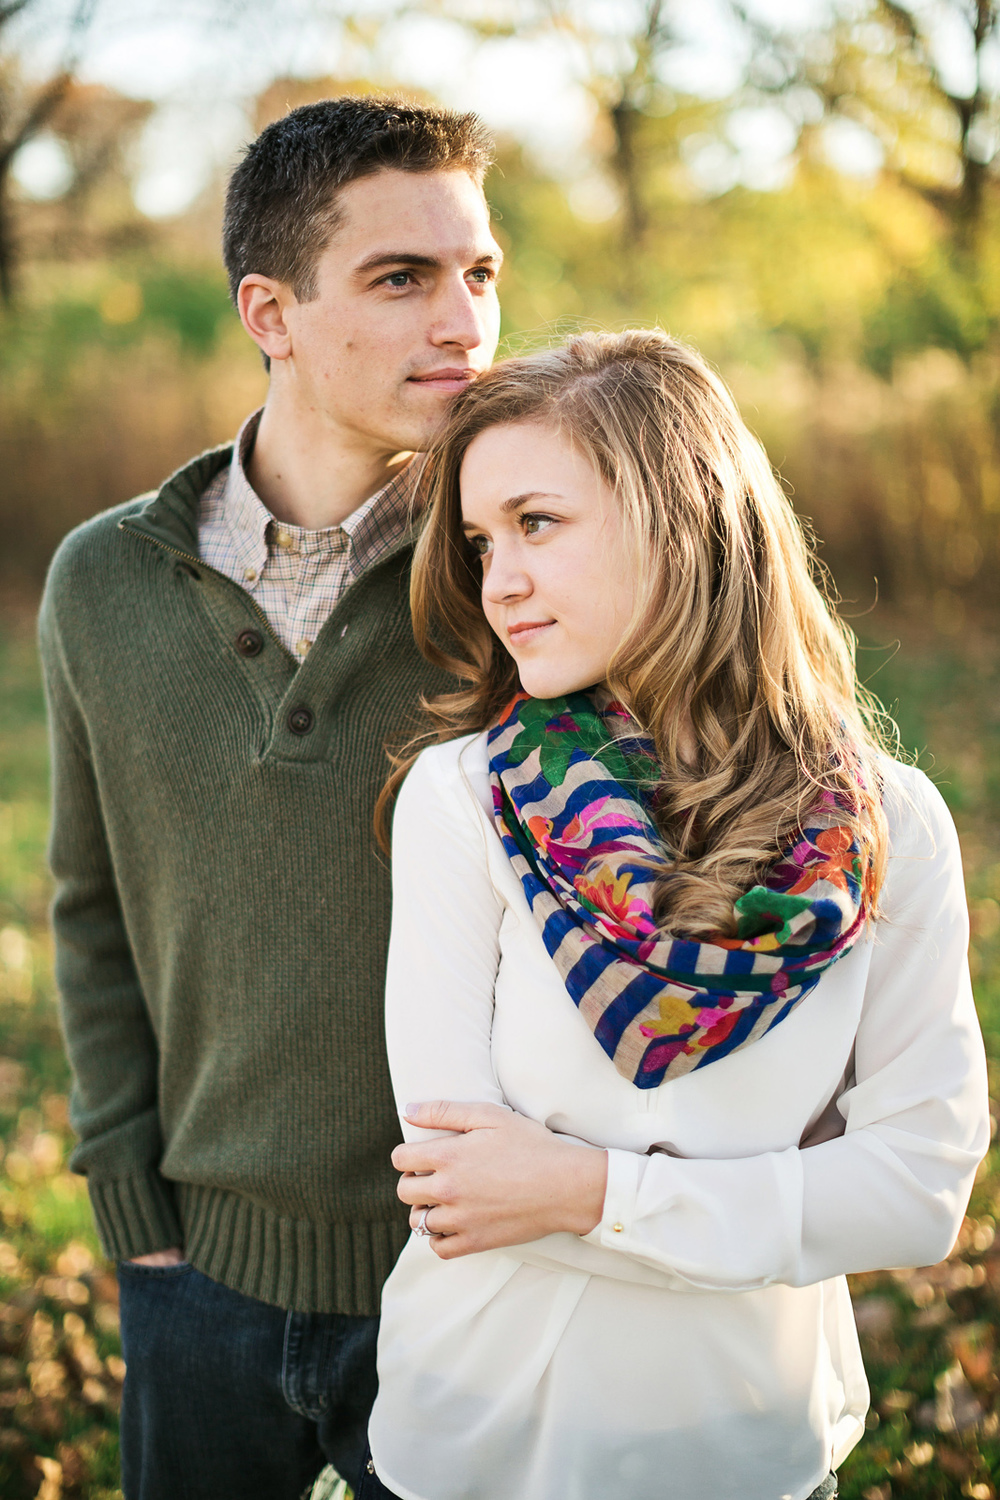 Oldani Photography-St Louis-Forest Park-Grand Basin-Engagement Session-engagement photos_20141108_165127.jpg